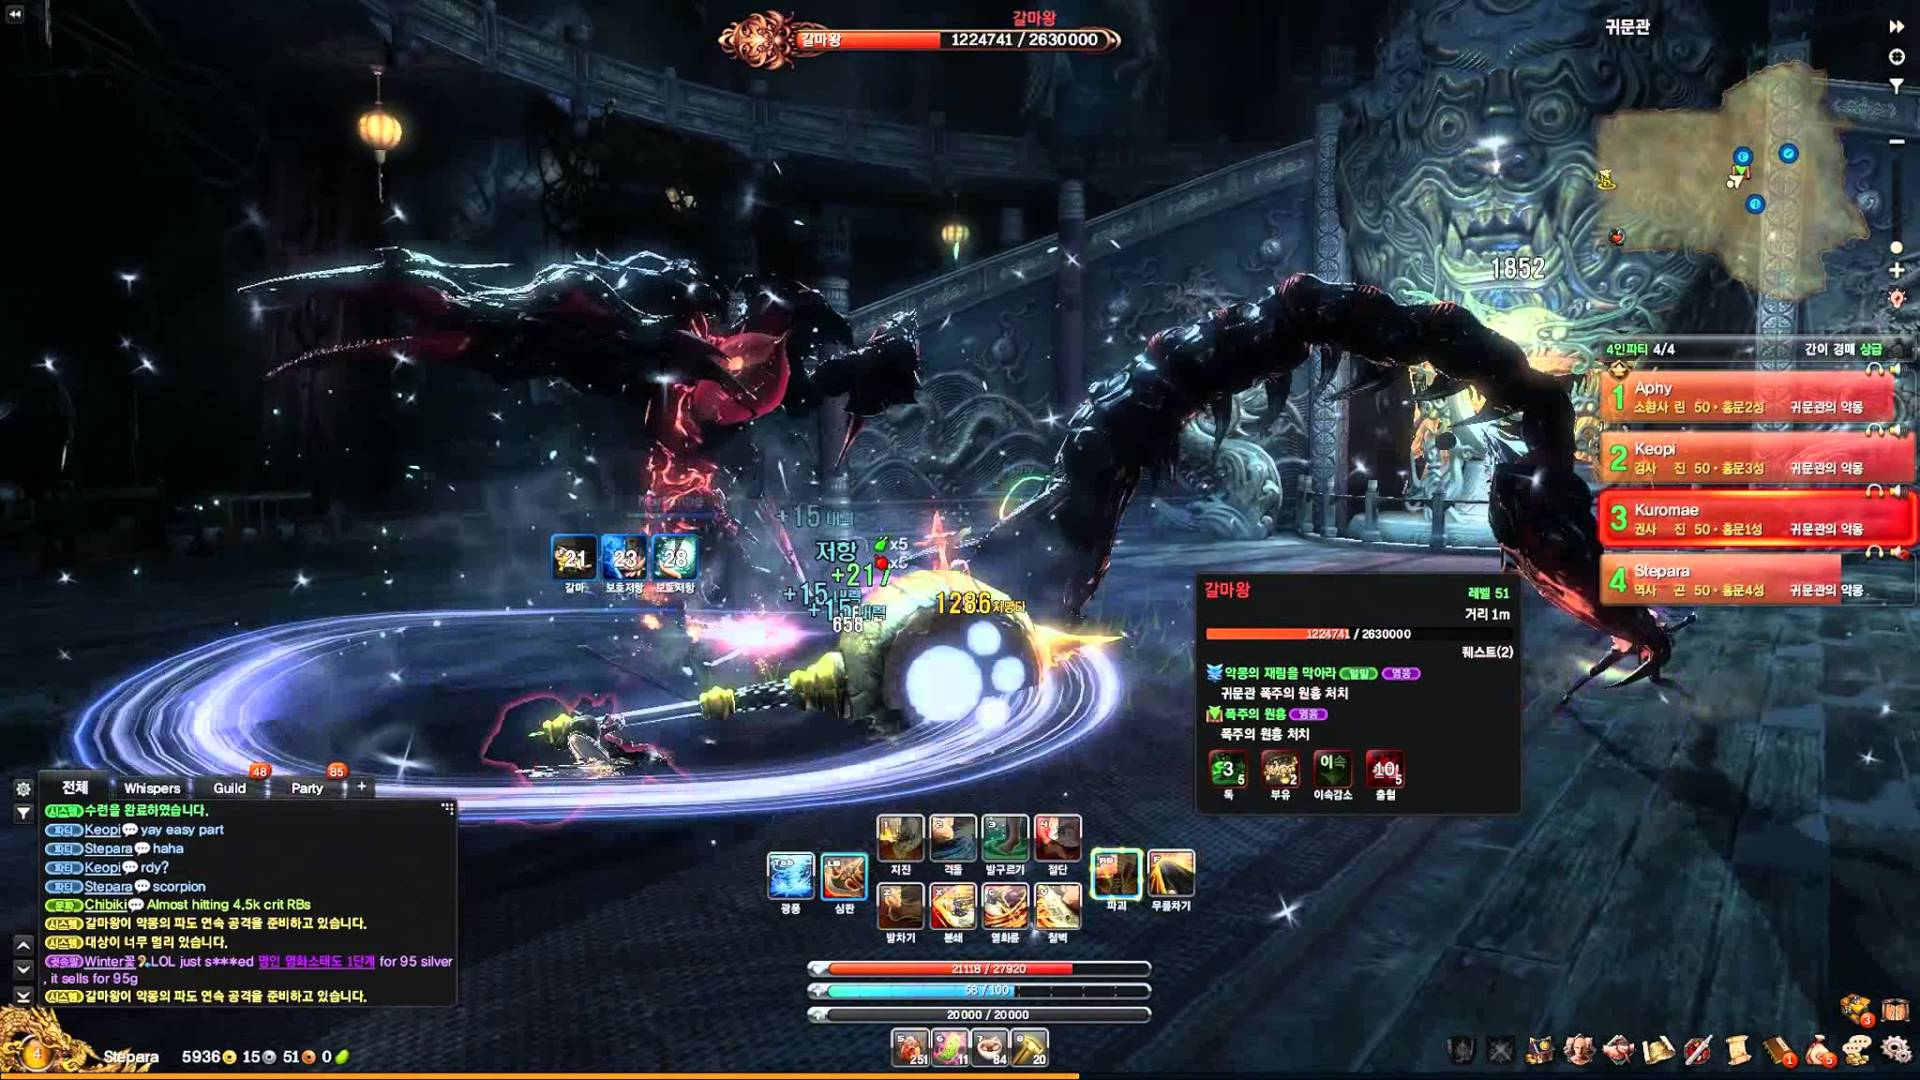 blade-and-soul-bns-gold-guides-ncsoft-news-opinion-tips-blade-and-soul-academy-reddit-1